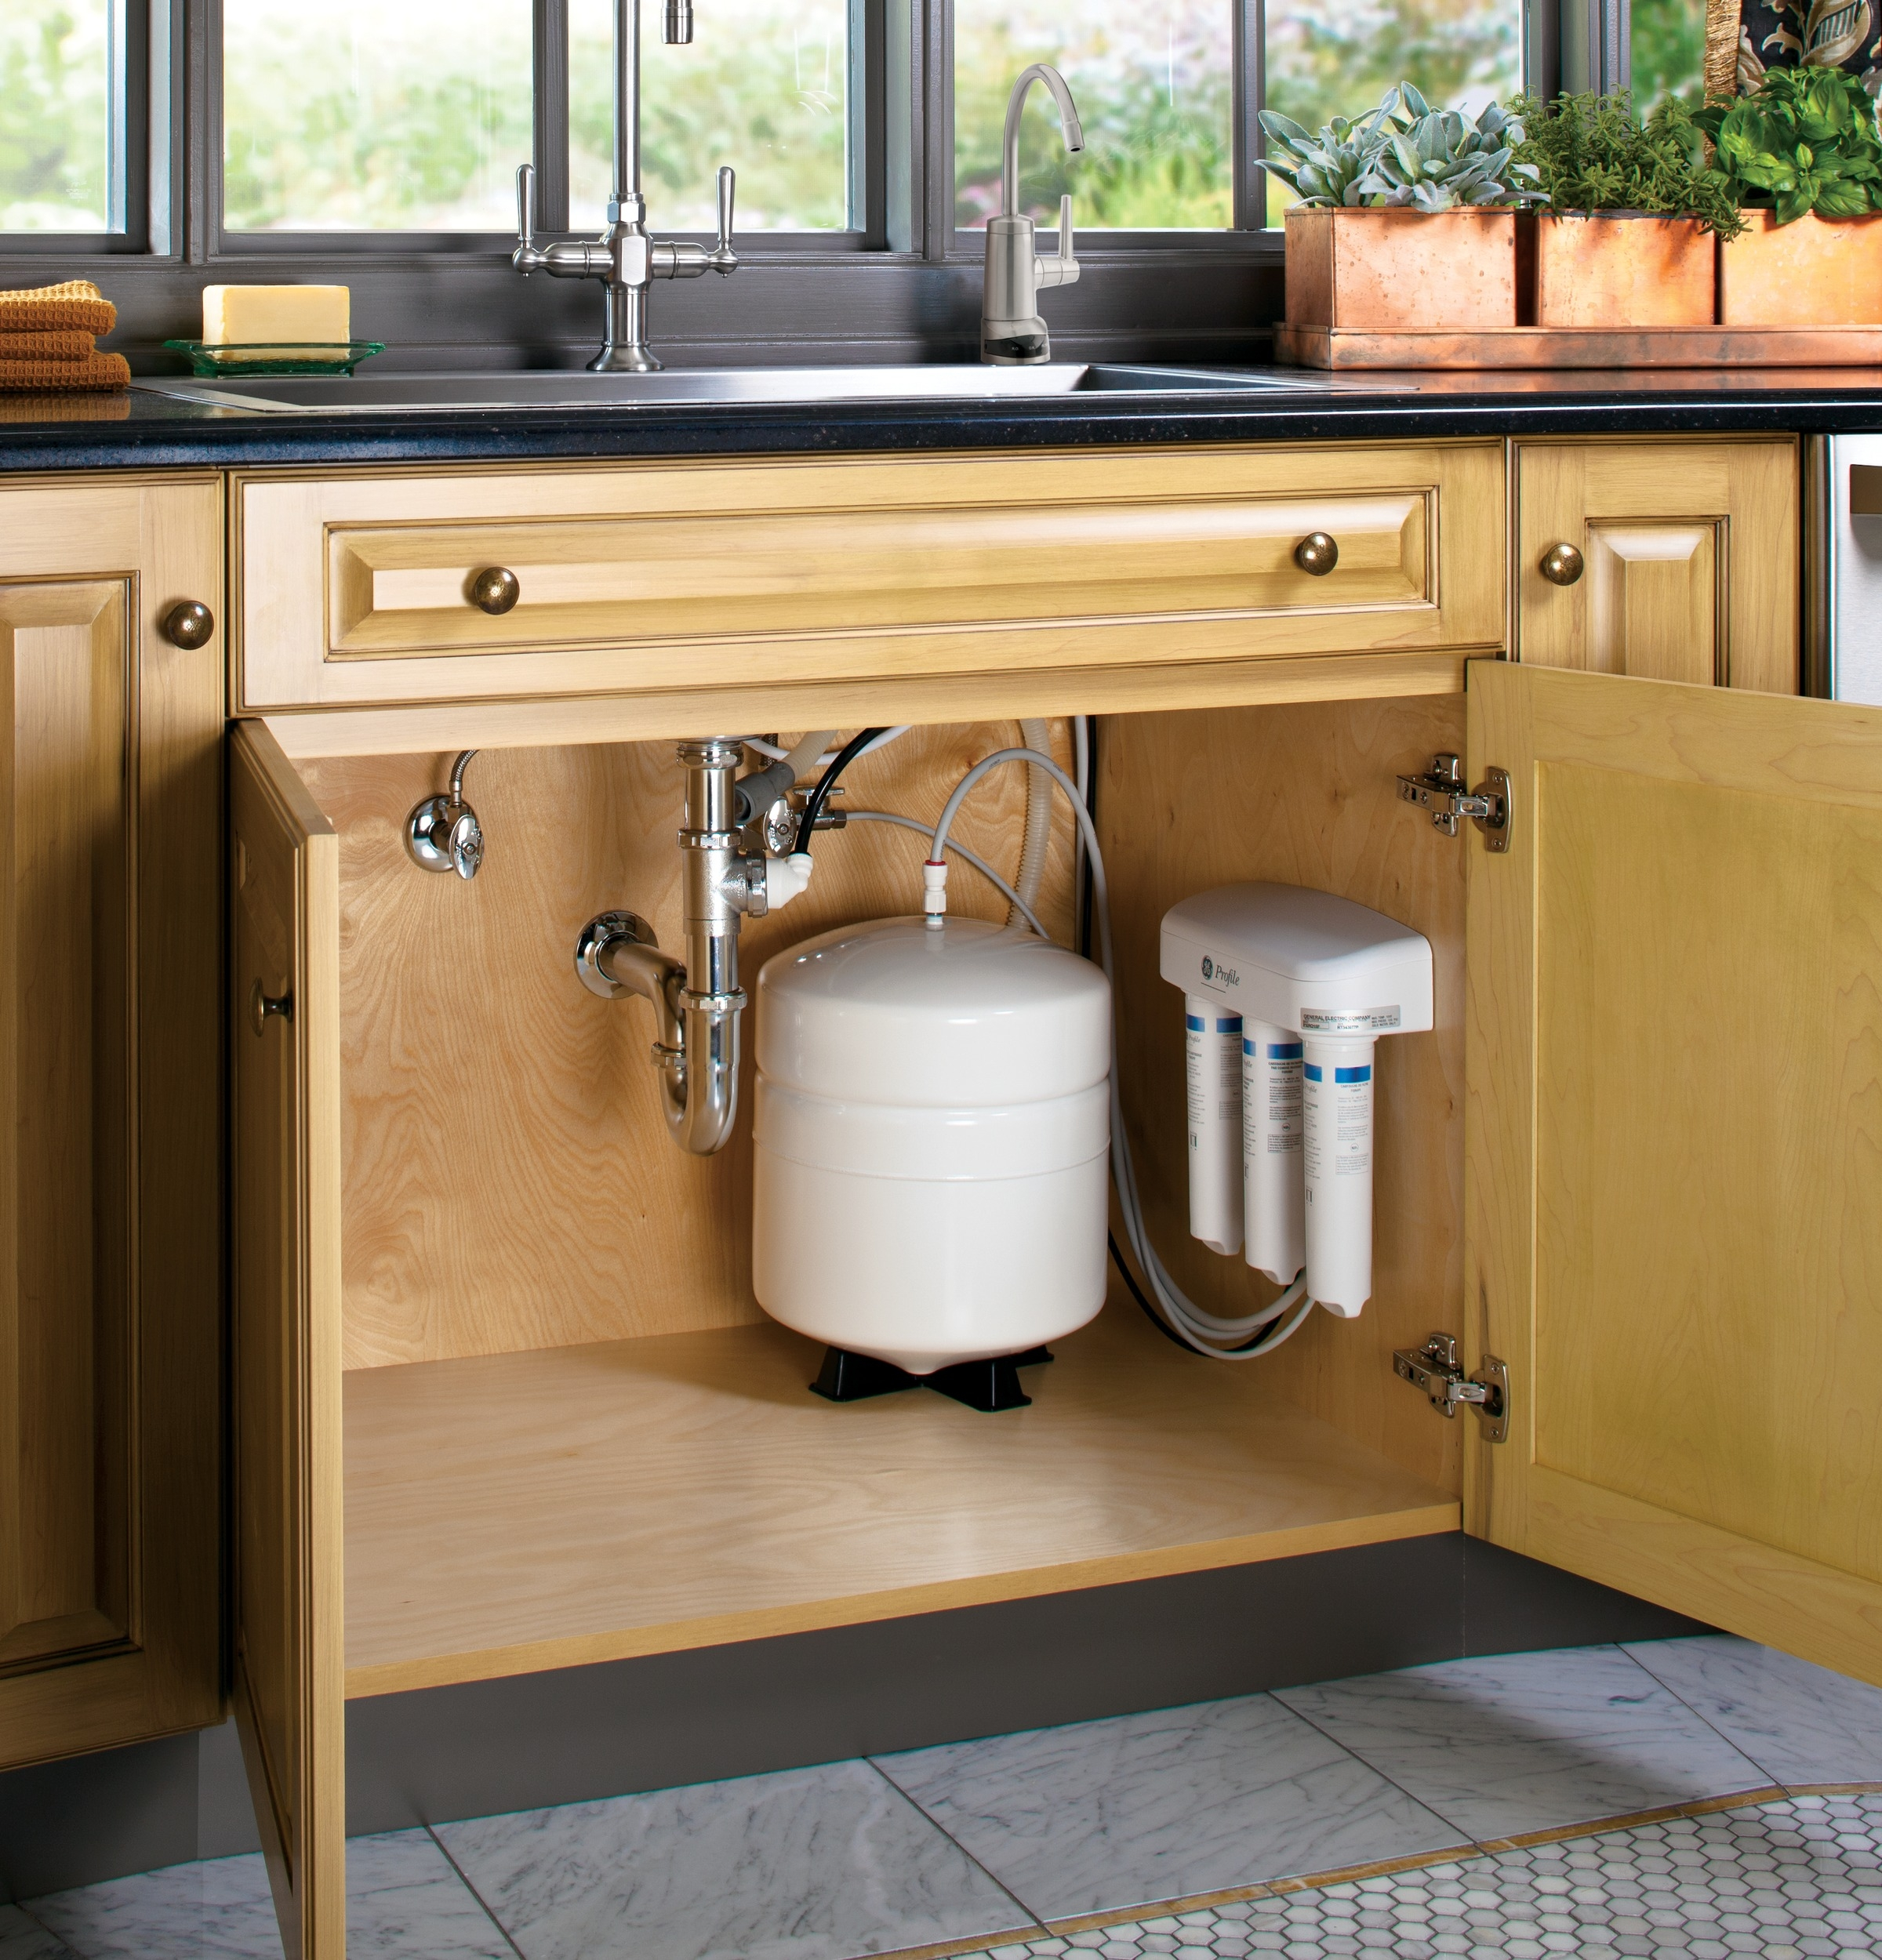 Ideas, under sink water filter for kitchen faucet water filter ideas in size 2400 x 2500  .